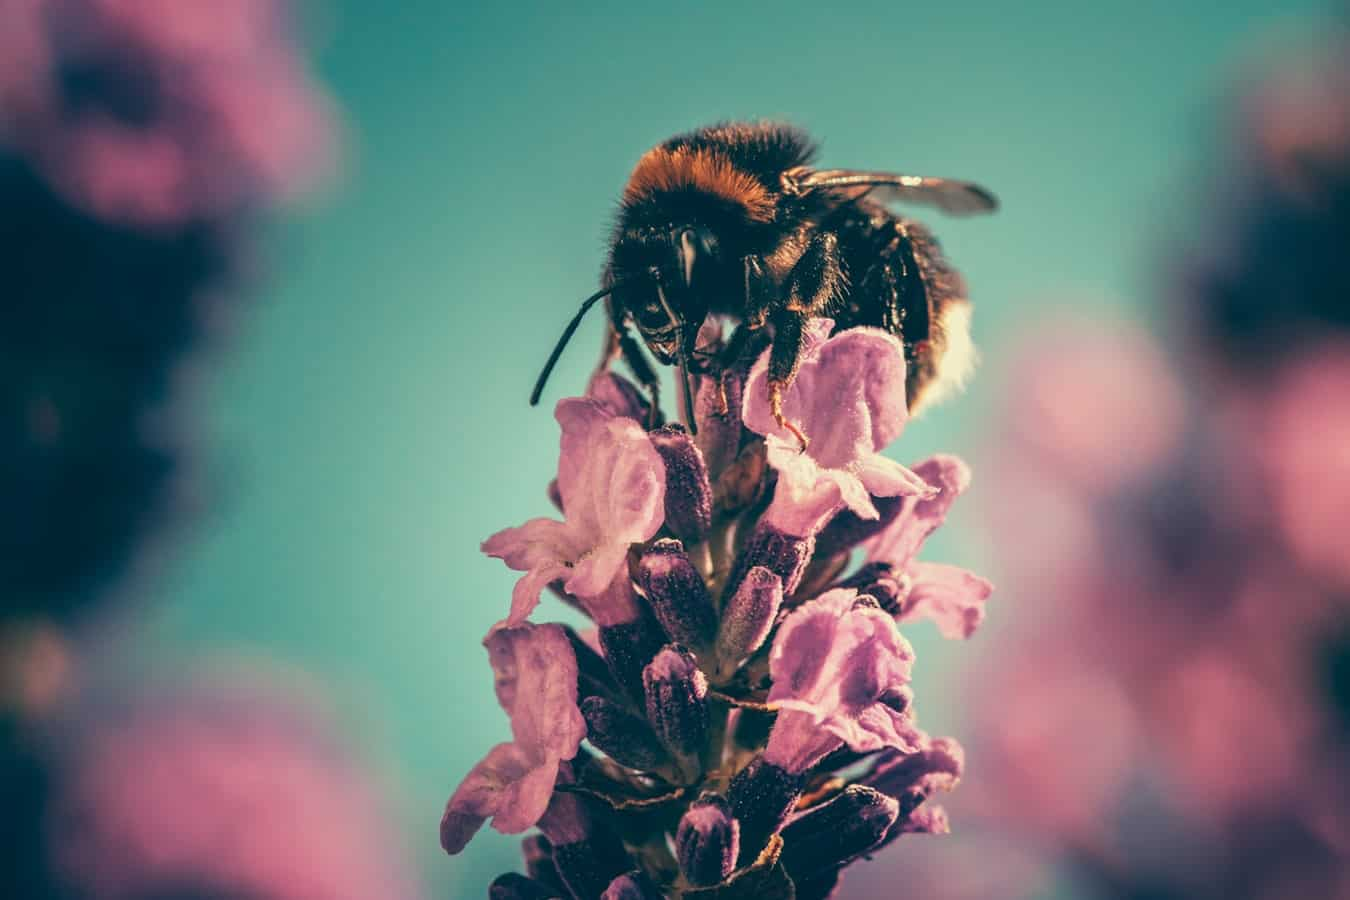 Micro shot of a bee on a pink flower